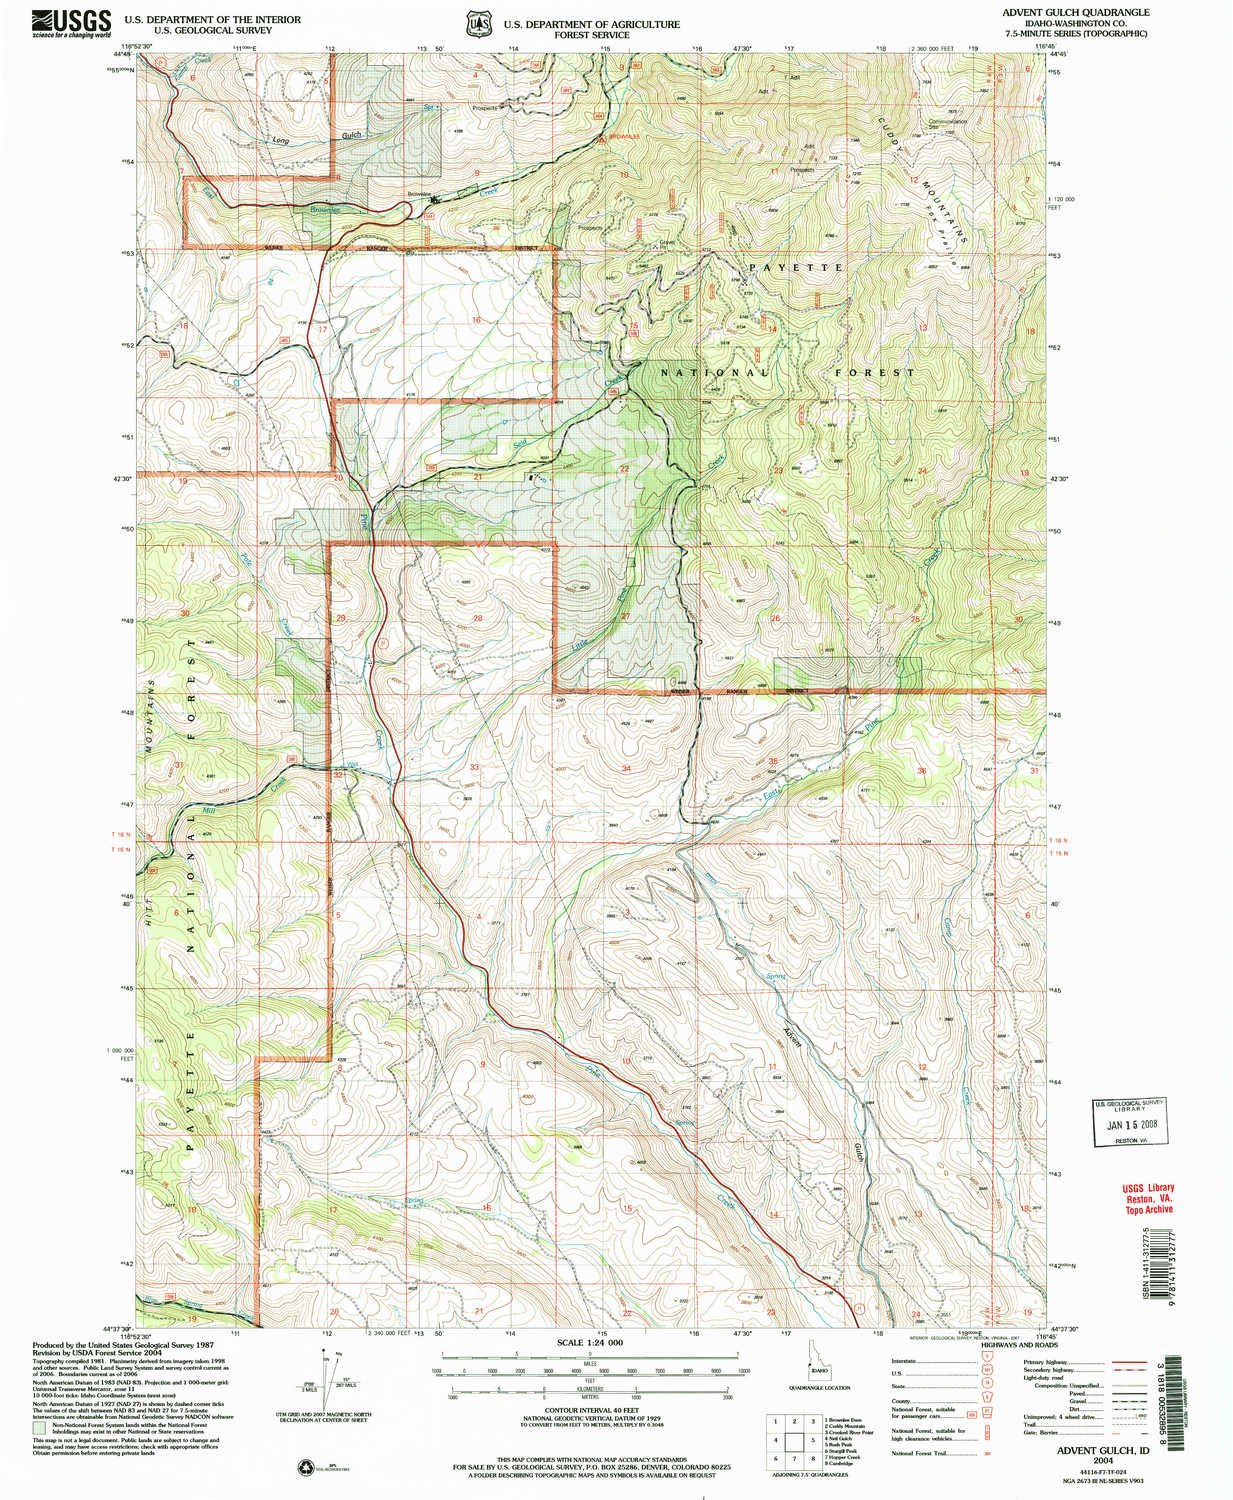 Amazon YellowMaps Advent Gulch ID topo map 1 Scale 7 5